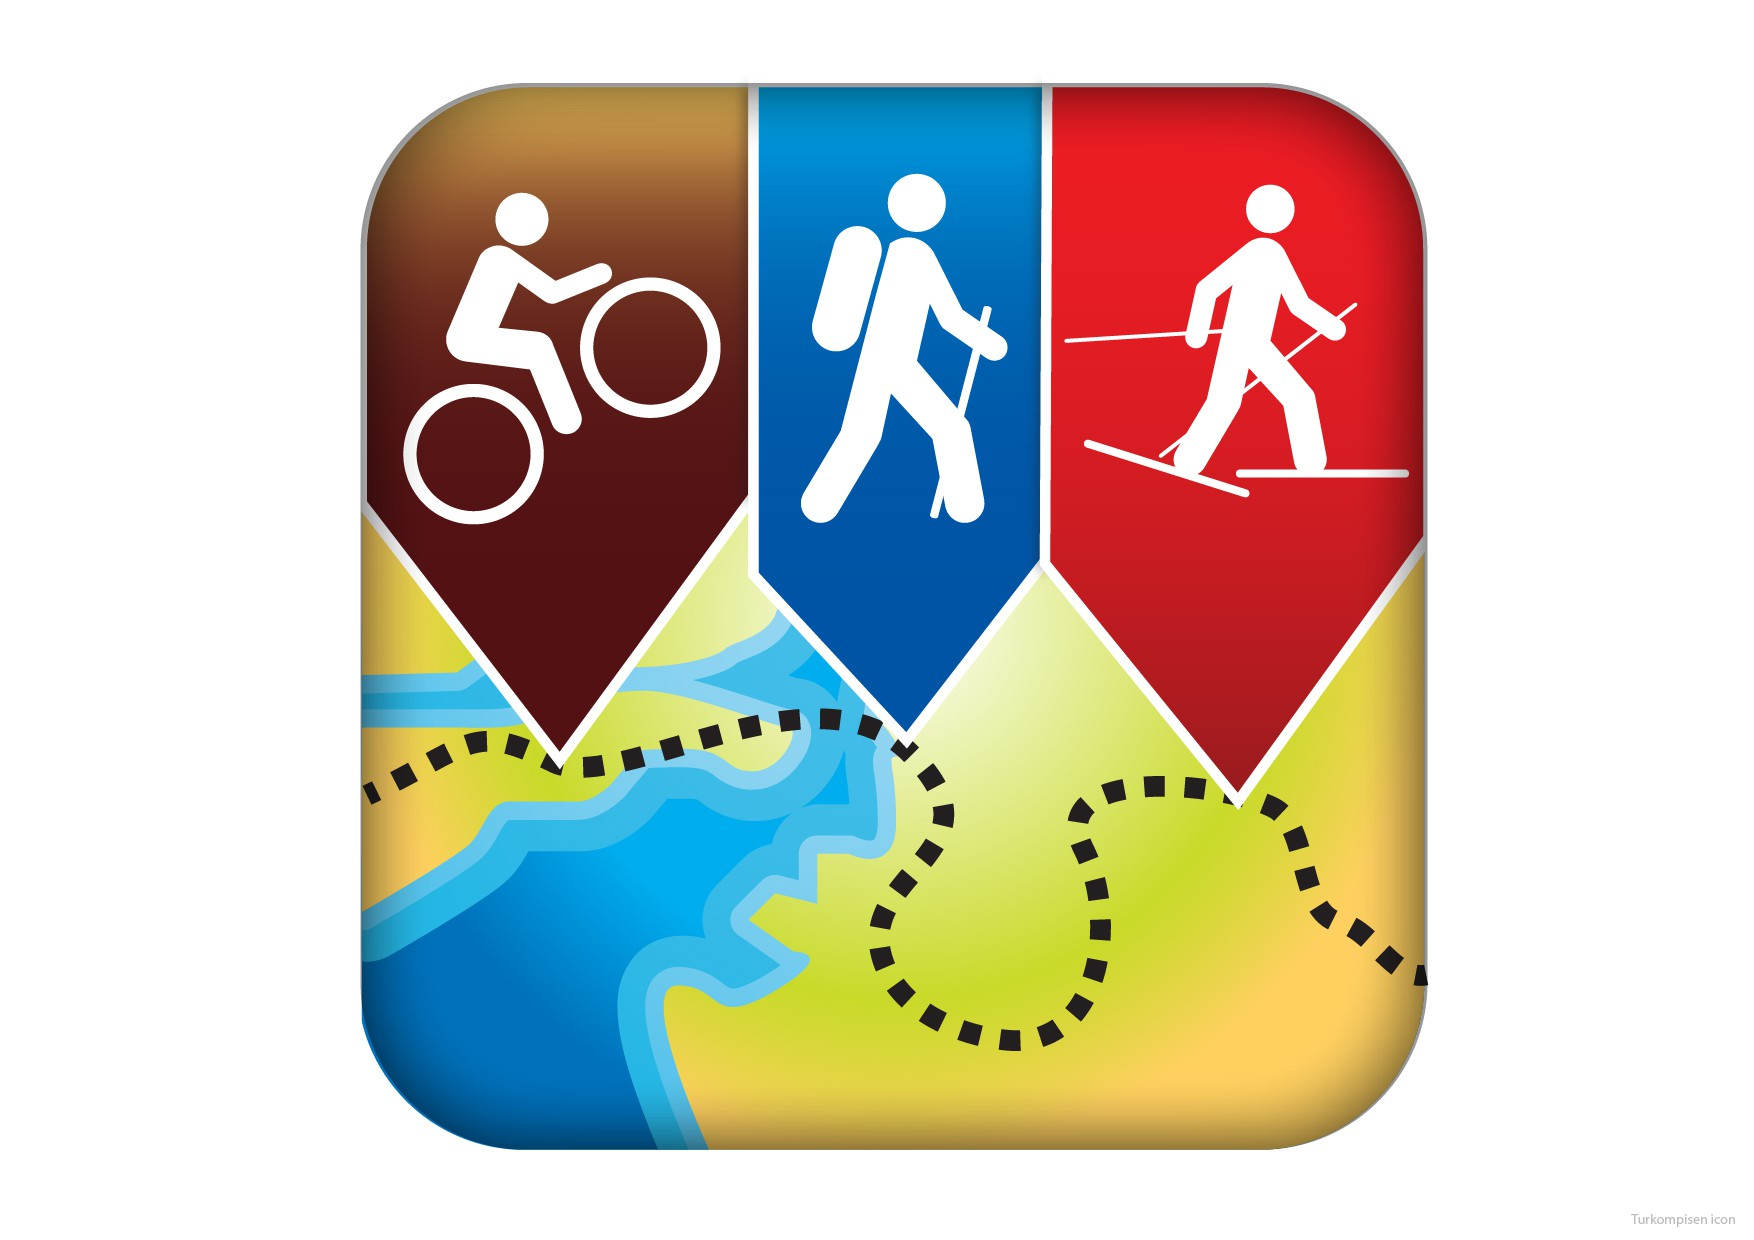 Icon for map app launching for Android/iOS